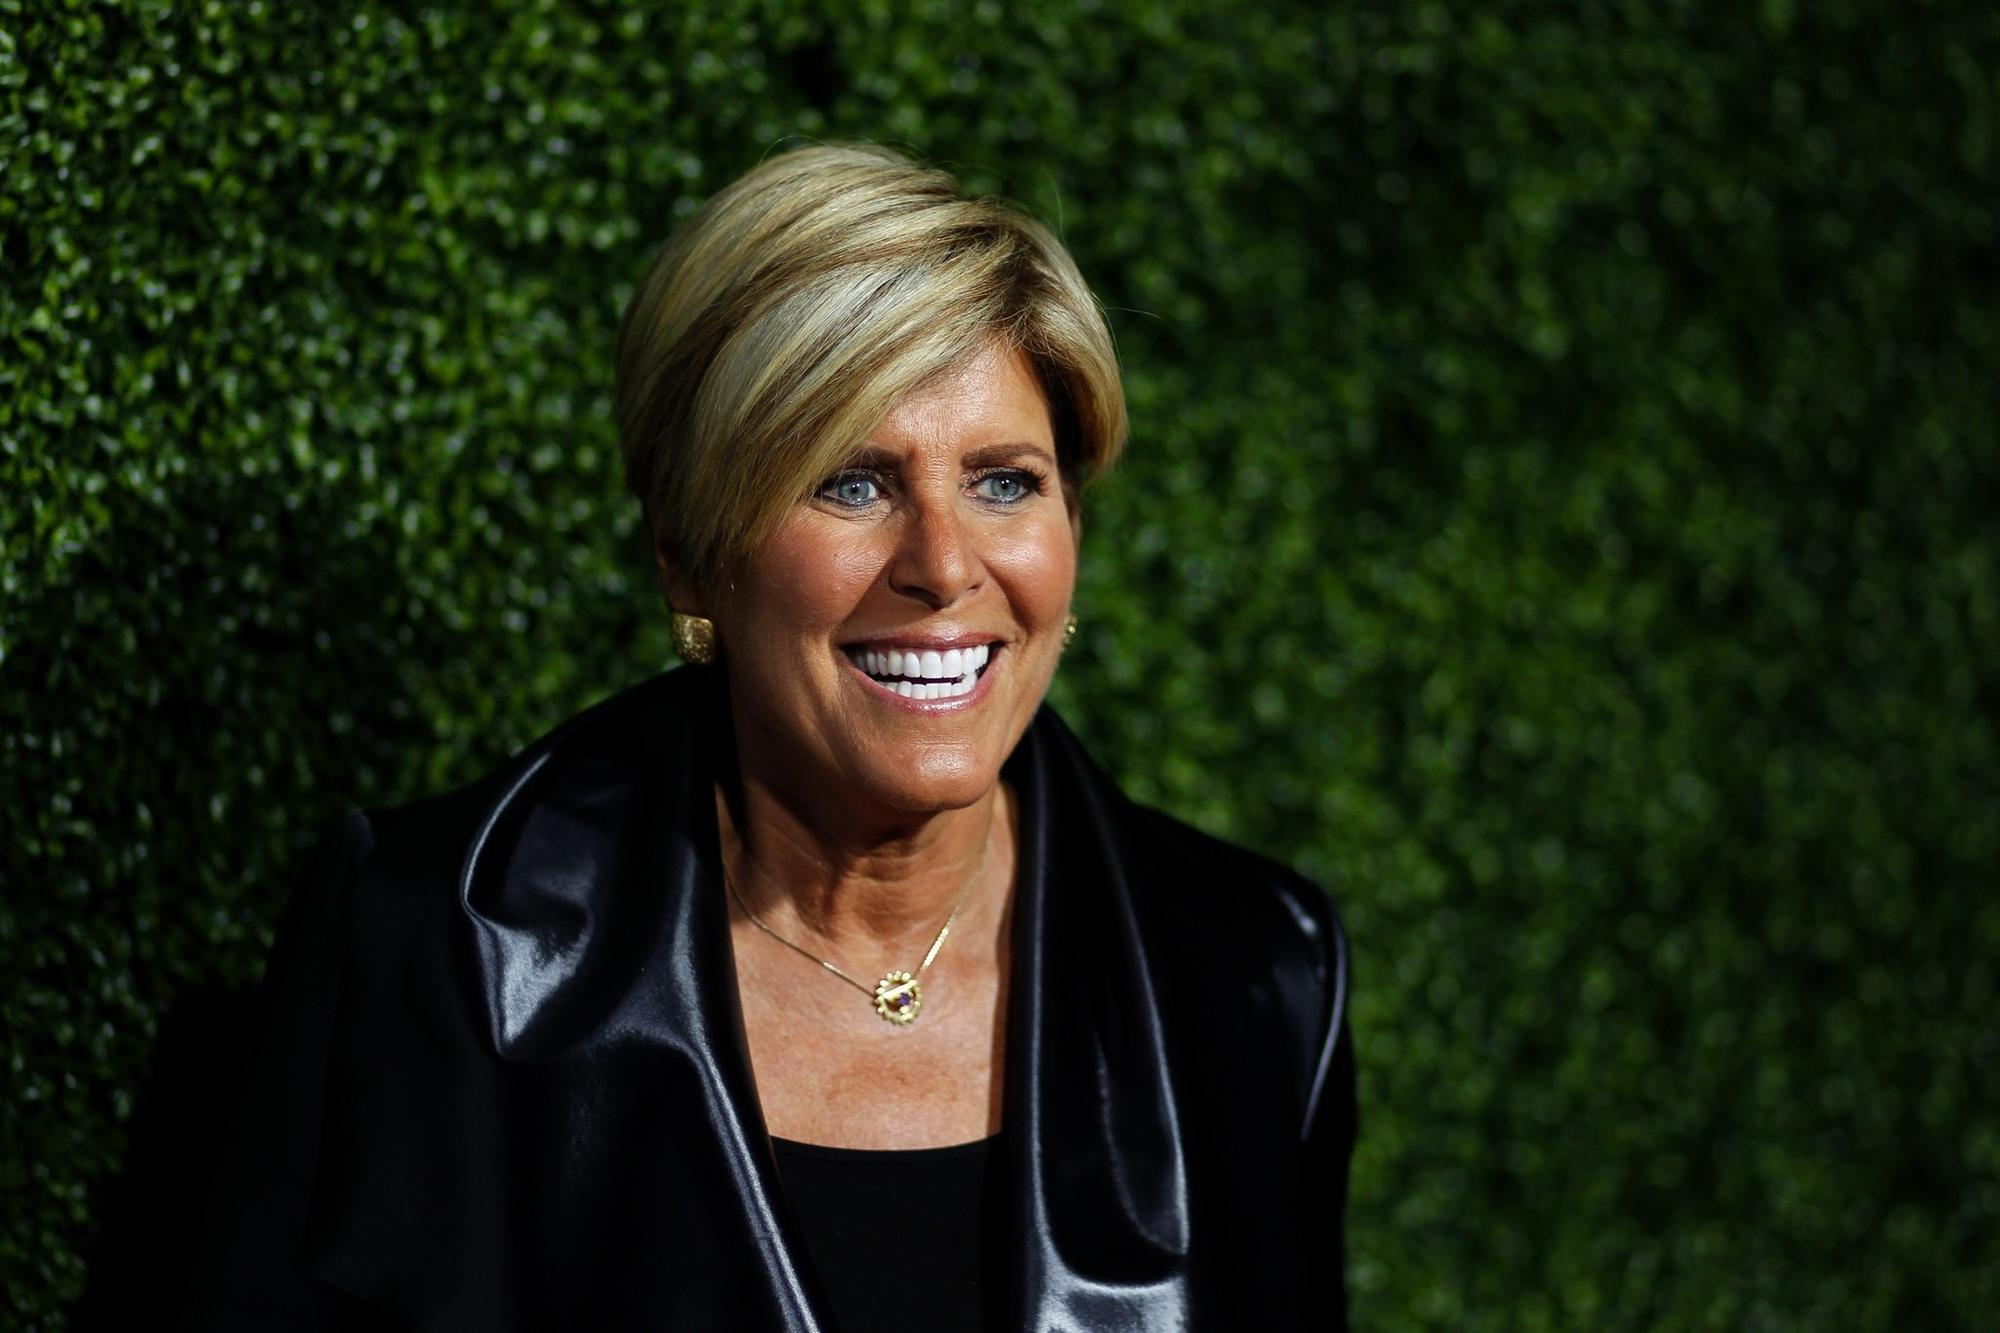 Chicago native suze orman gives a glimpse into her new life in the chicago native suze orman gives a glimpse into her new life in the bahamas chicago tribune solutioingenieria Choice Image